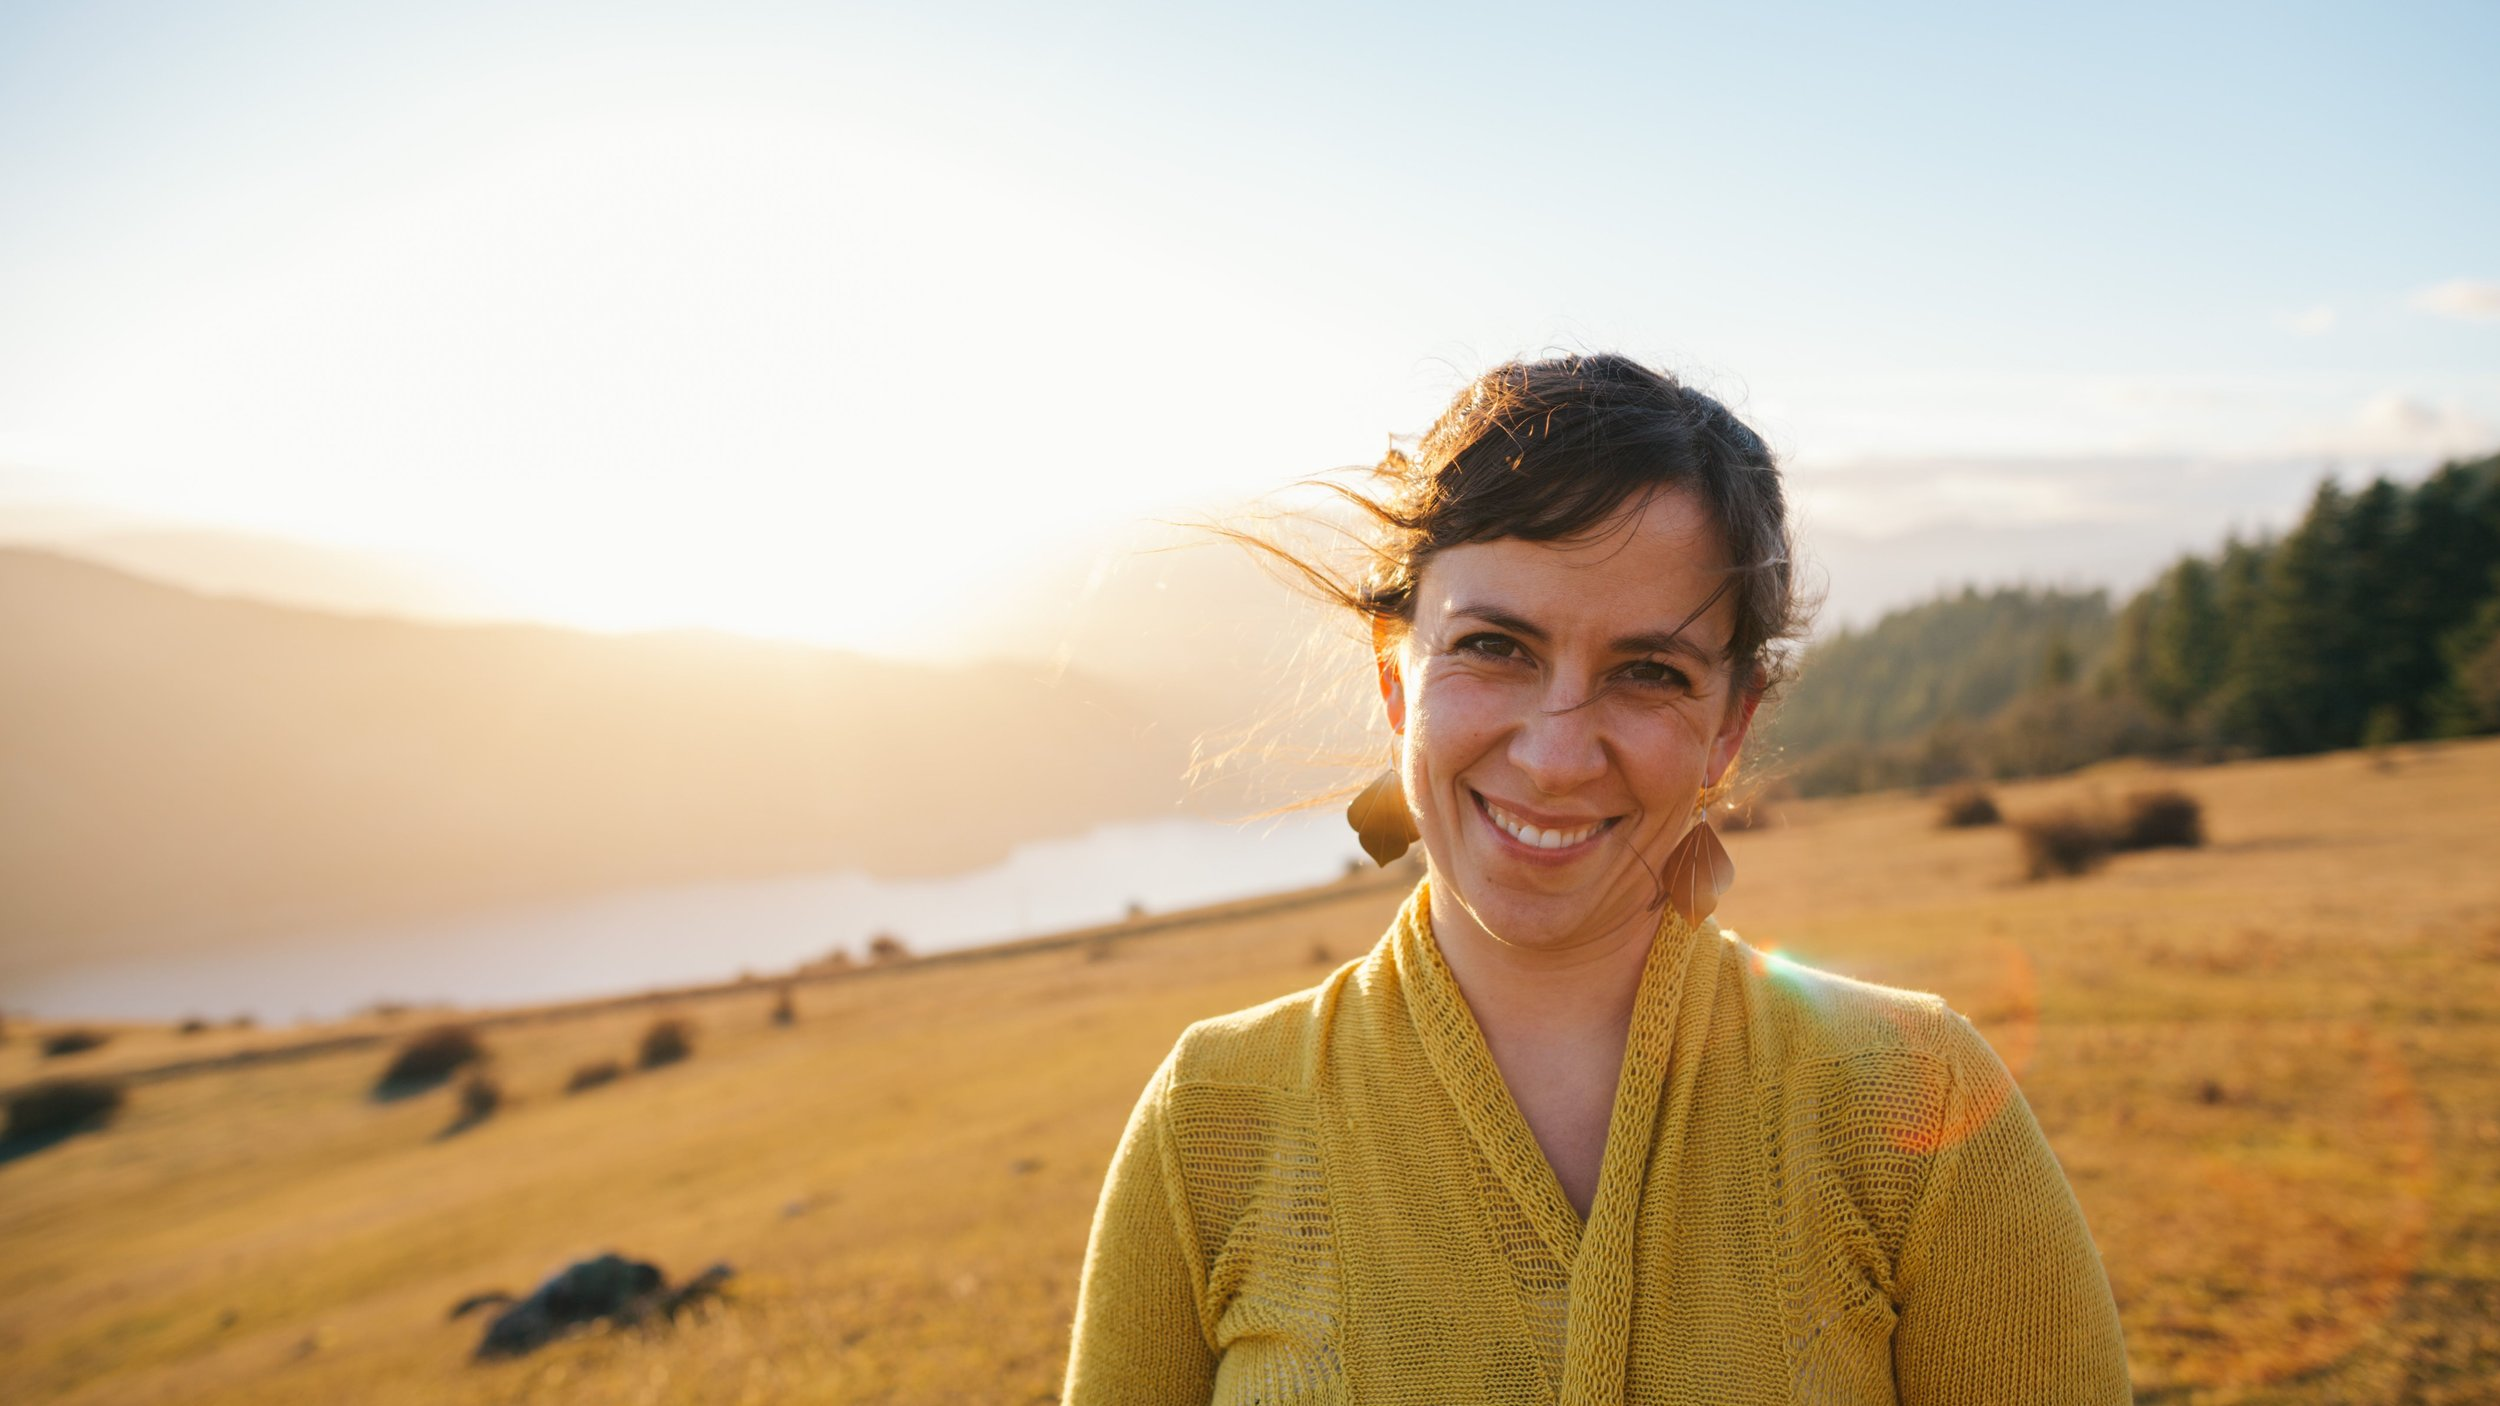 Amber Valenti Armstrong, PA-C - 6 Things You Need to Become an Unstoppable Changemaker in 2019